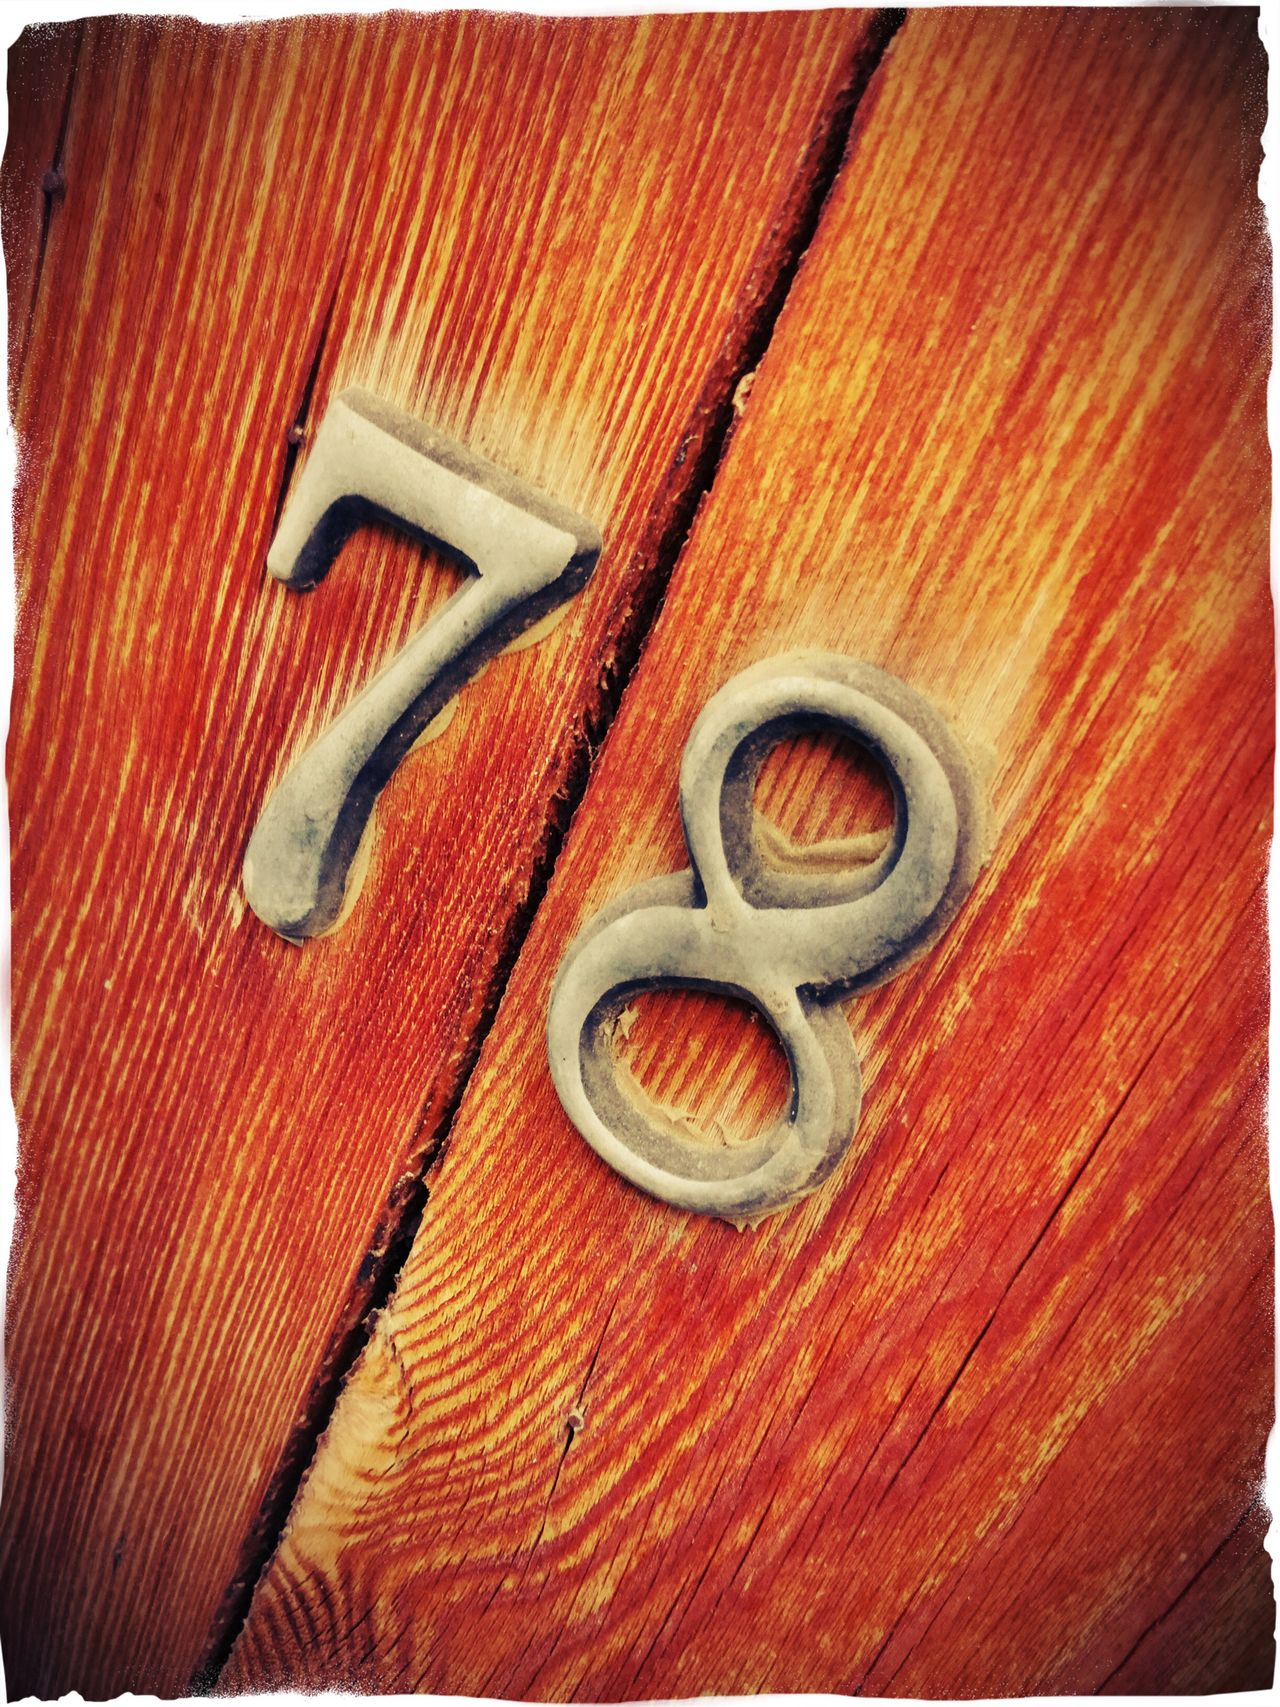 Counting Numbers Background Numberplate Wood - Material Full Frame Auto Post Production Filter Red No People Vibrant Color Number 78 Number 78 Cyprus Bark Texture Brown Color Wooden Weathered Wood Textures And Surfaces Age